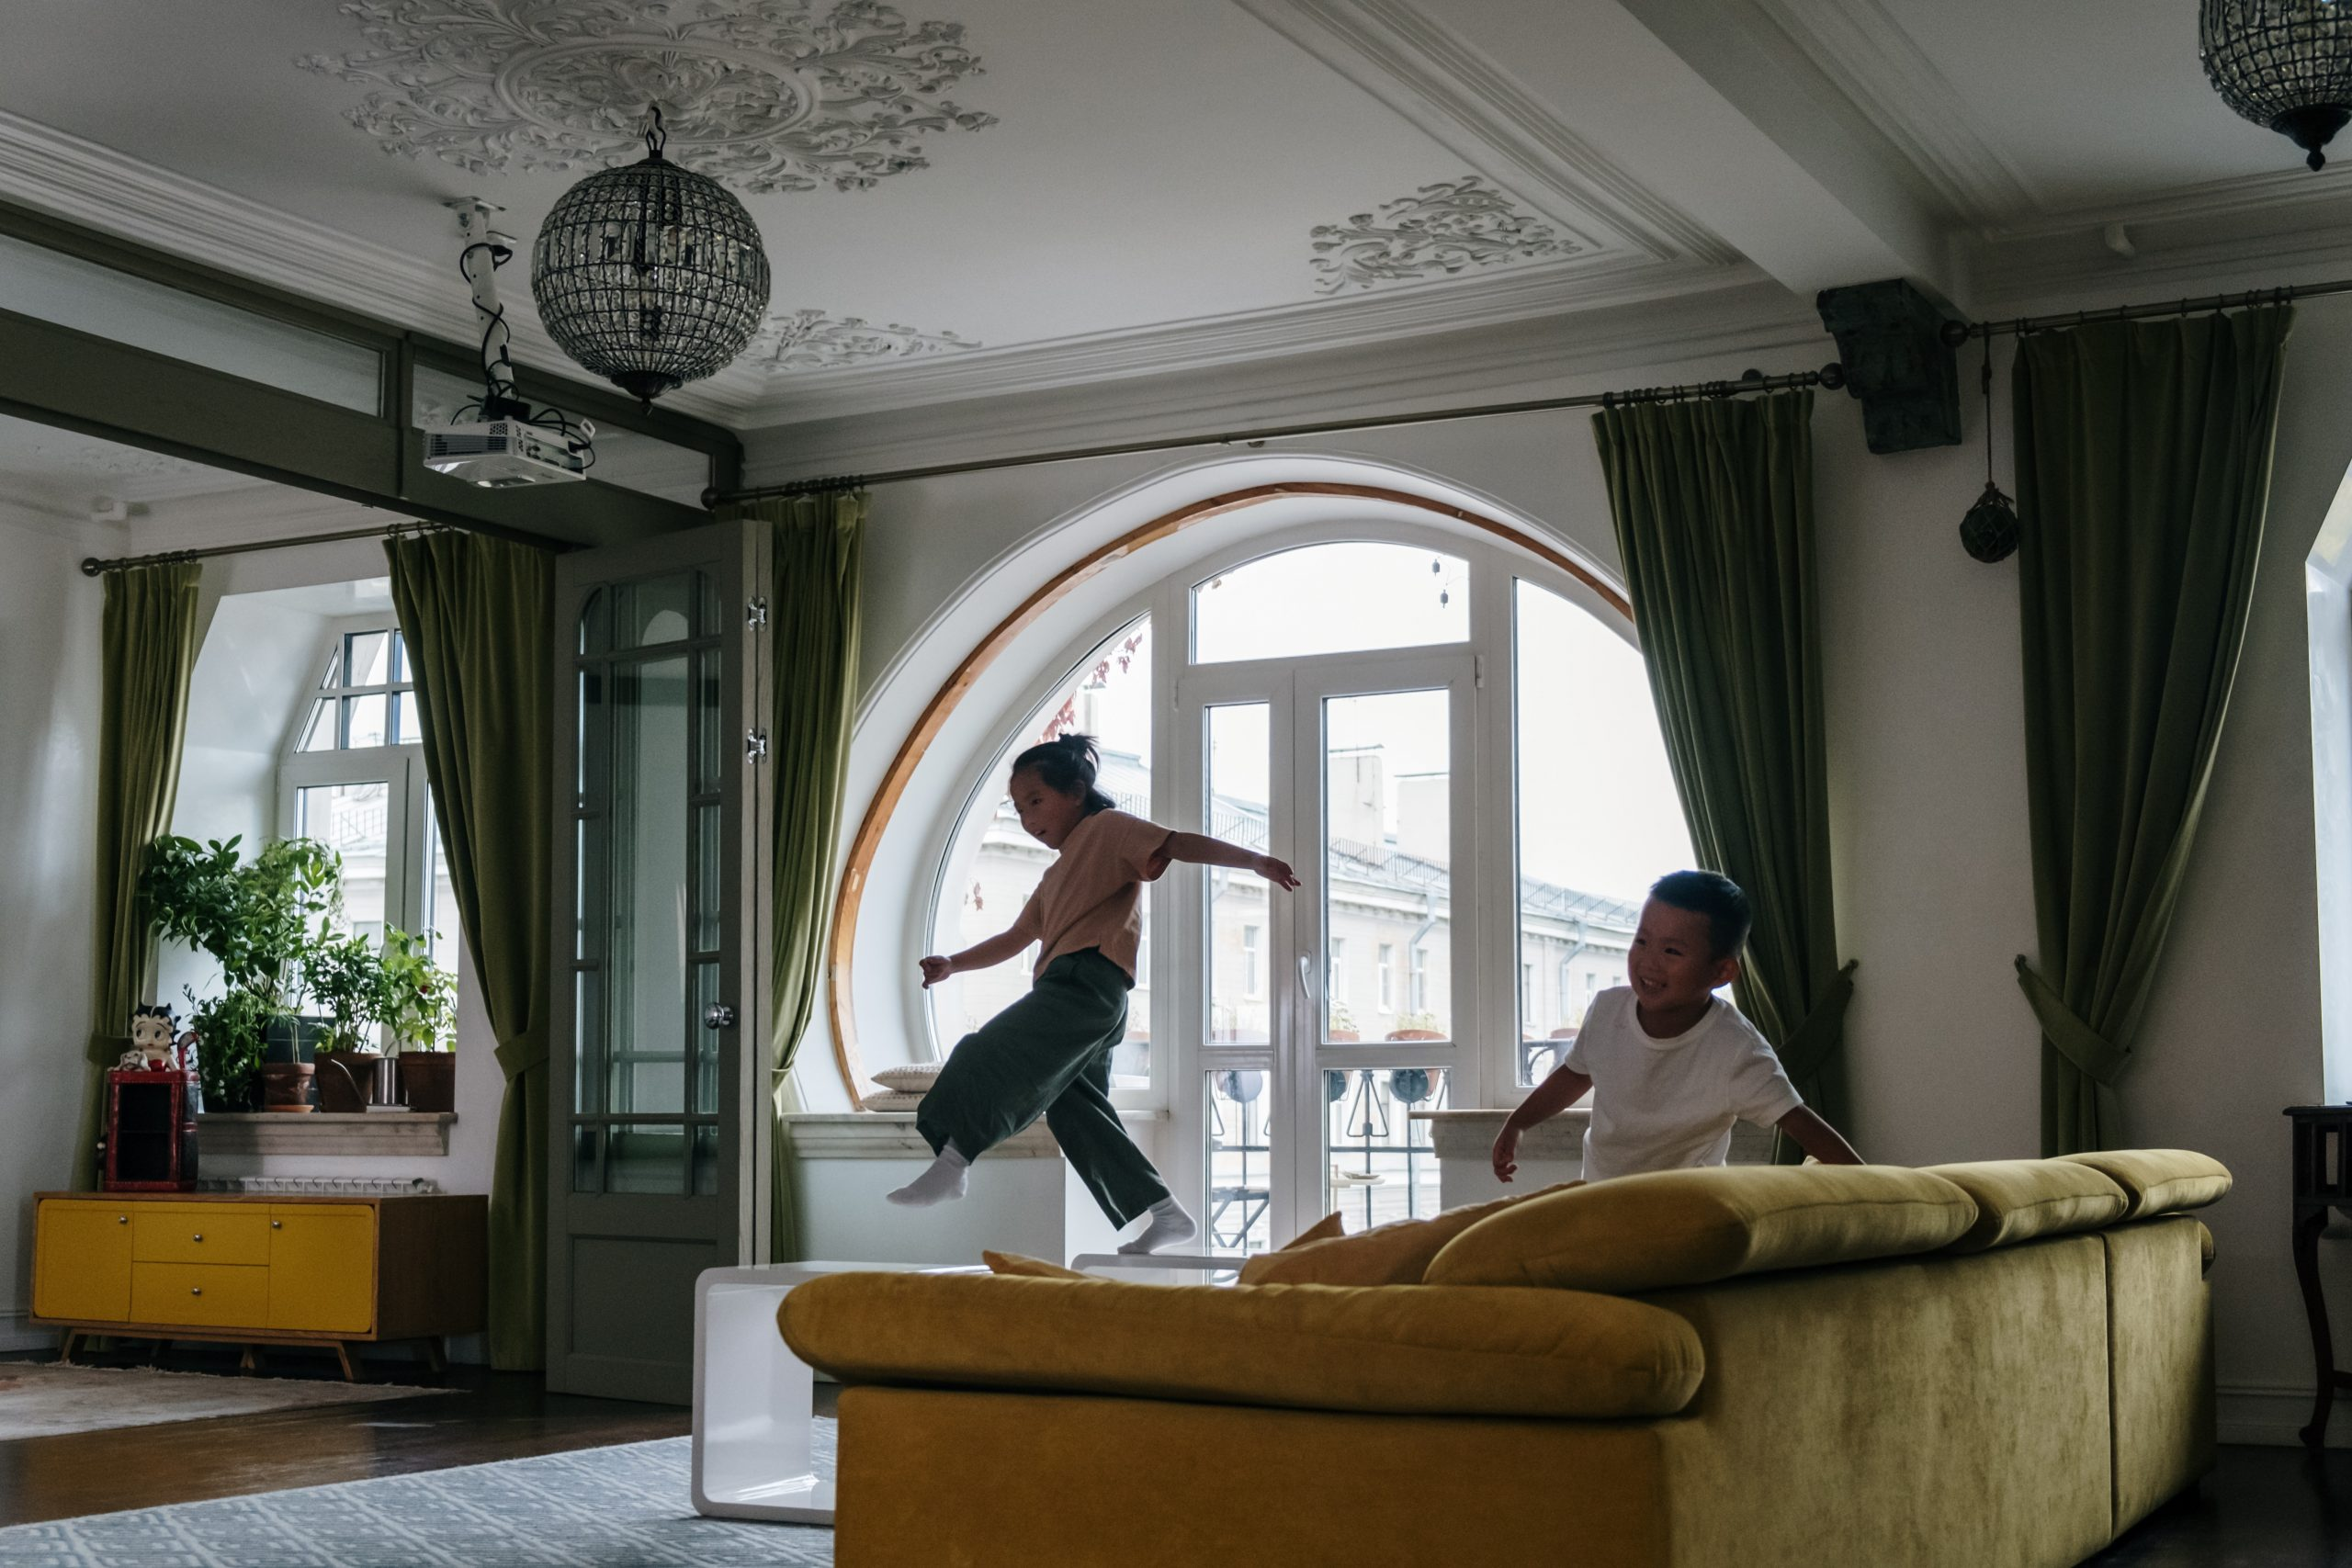 child jumping off the sofa in a living room